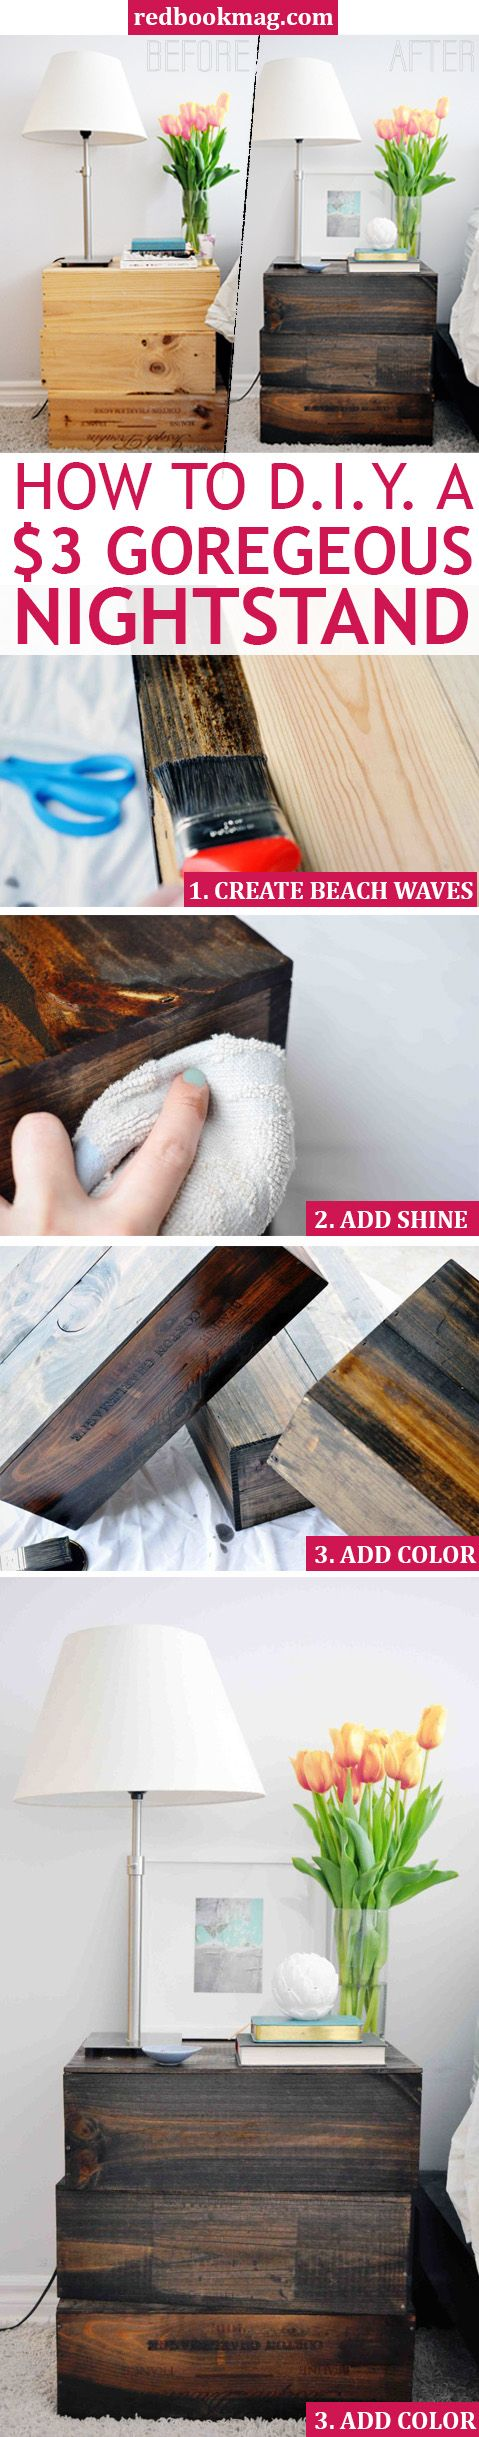 CHEAP DIY NIGHTSTAND: We all love chic and unique furniture pieces, but one-of-a-kind decor is even better when you can make it yourself for almost nothing! With this easy tutorial from interior designer, Jacquelyn Clark, you can make this vintage-y looking nightstand from wine boxes and wood stain. Click through for the all the directions, pro tips, and the easy tutorial!